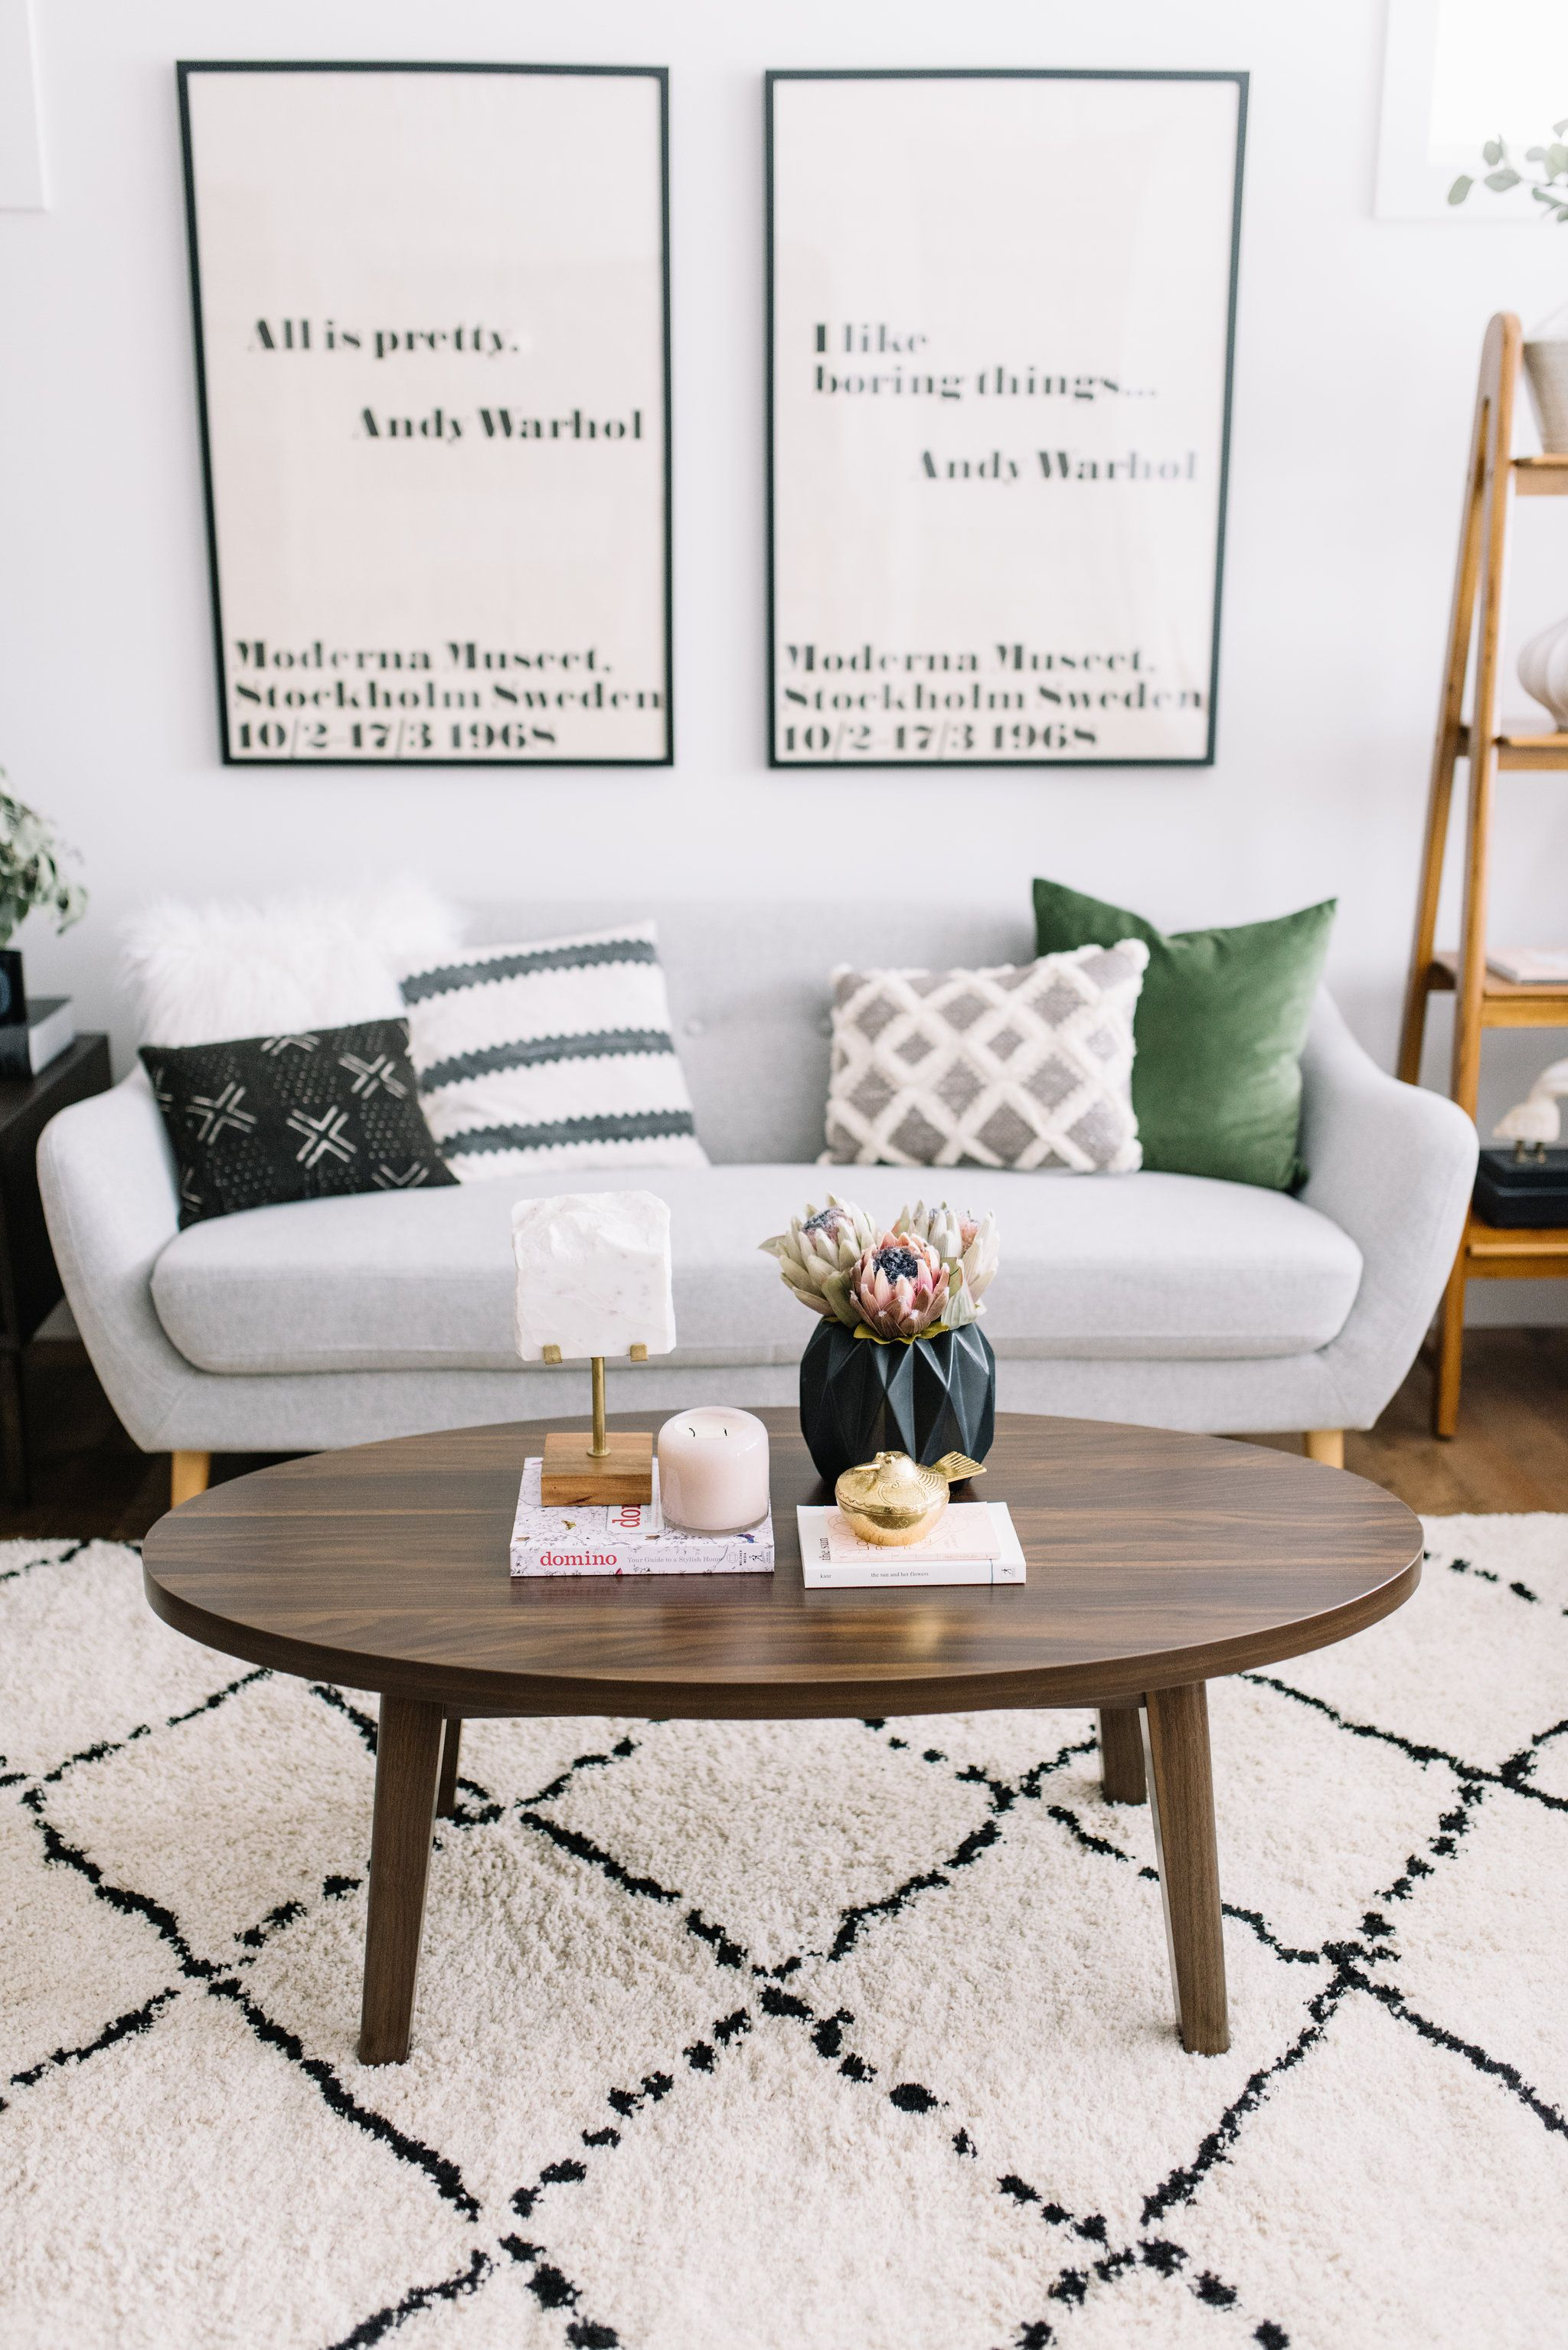 Coffee Table Styling 101 204 Park Coffee Table Perfect Coffee Table Living Room Remodel [ 3069 x 2048 Pixel ]